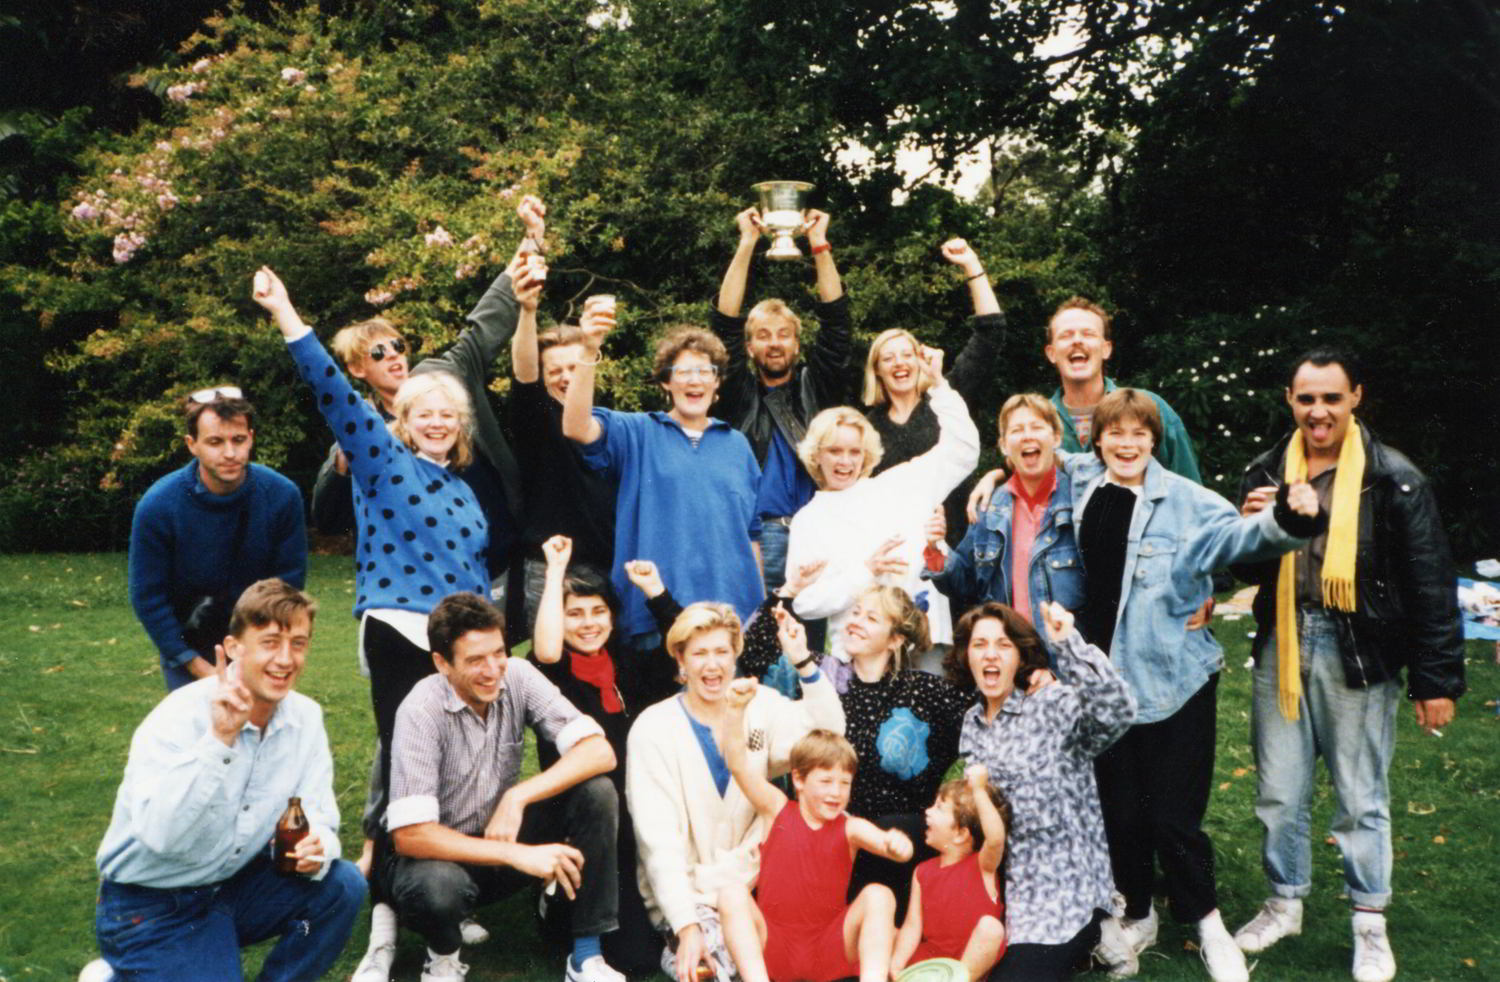 Handspan Theatre The Last Wave Moomba Award 1987 group photo of people in a park with trophy cup held aloft